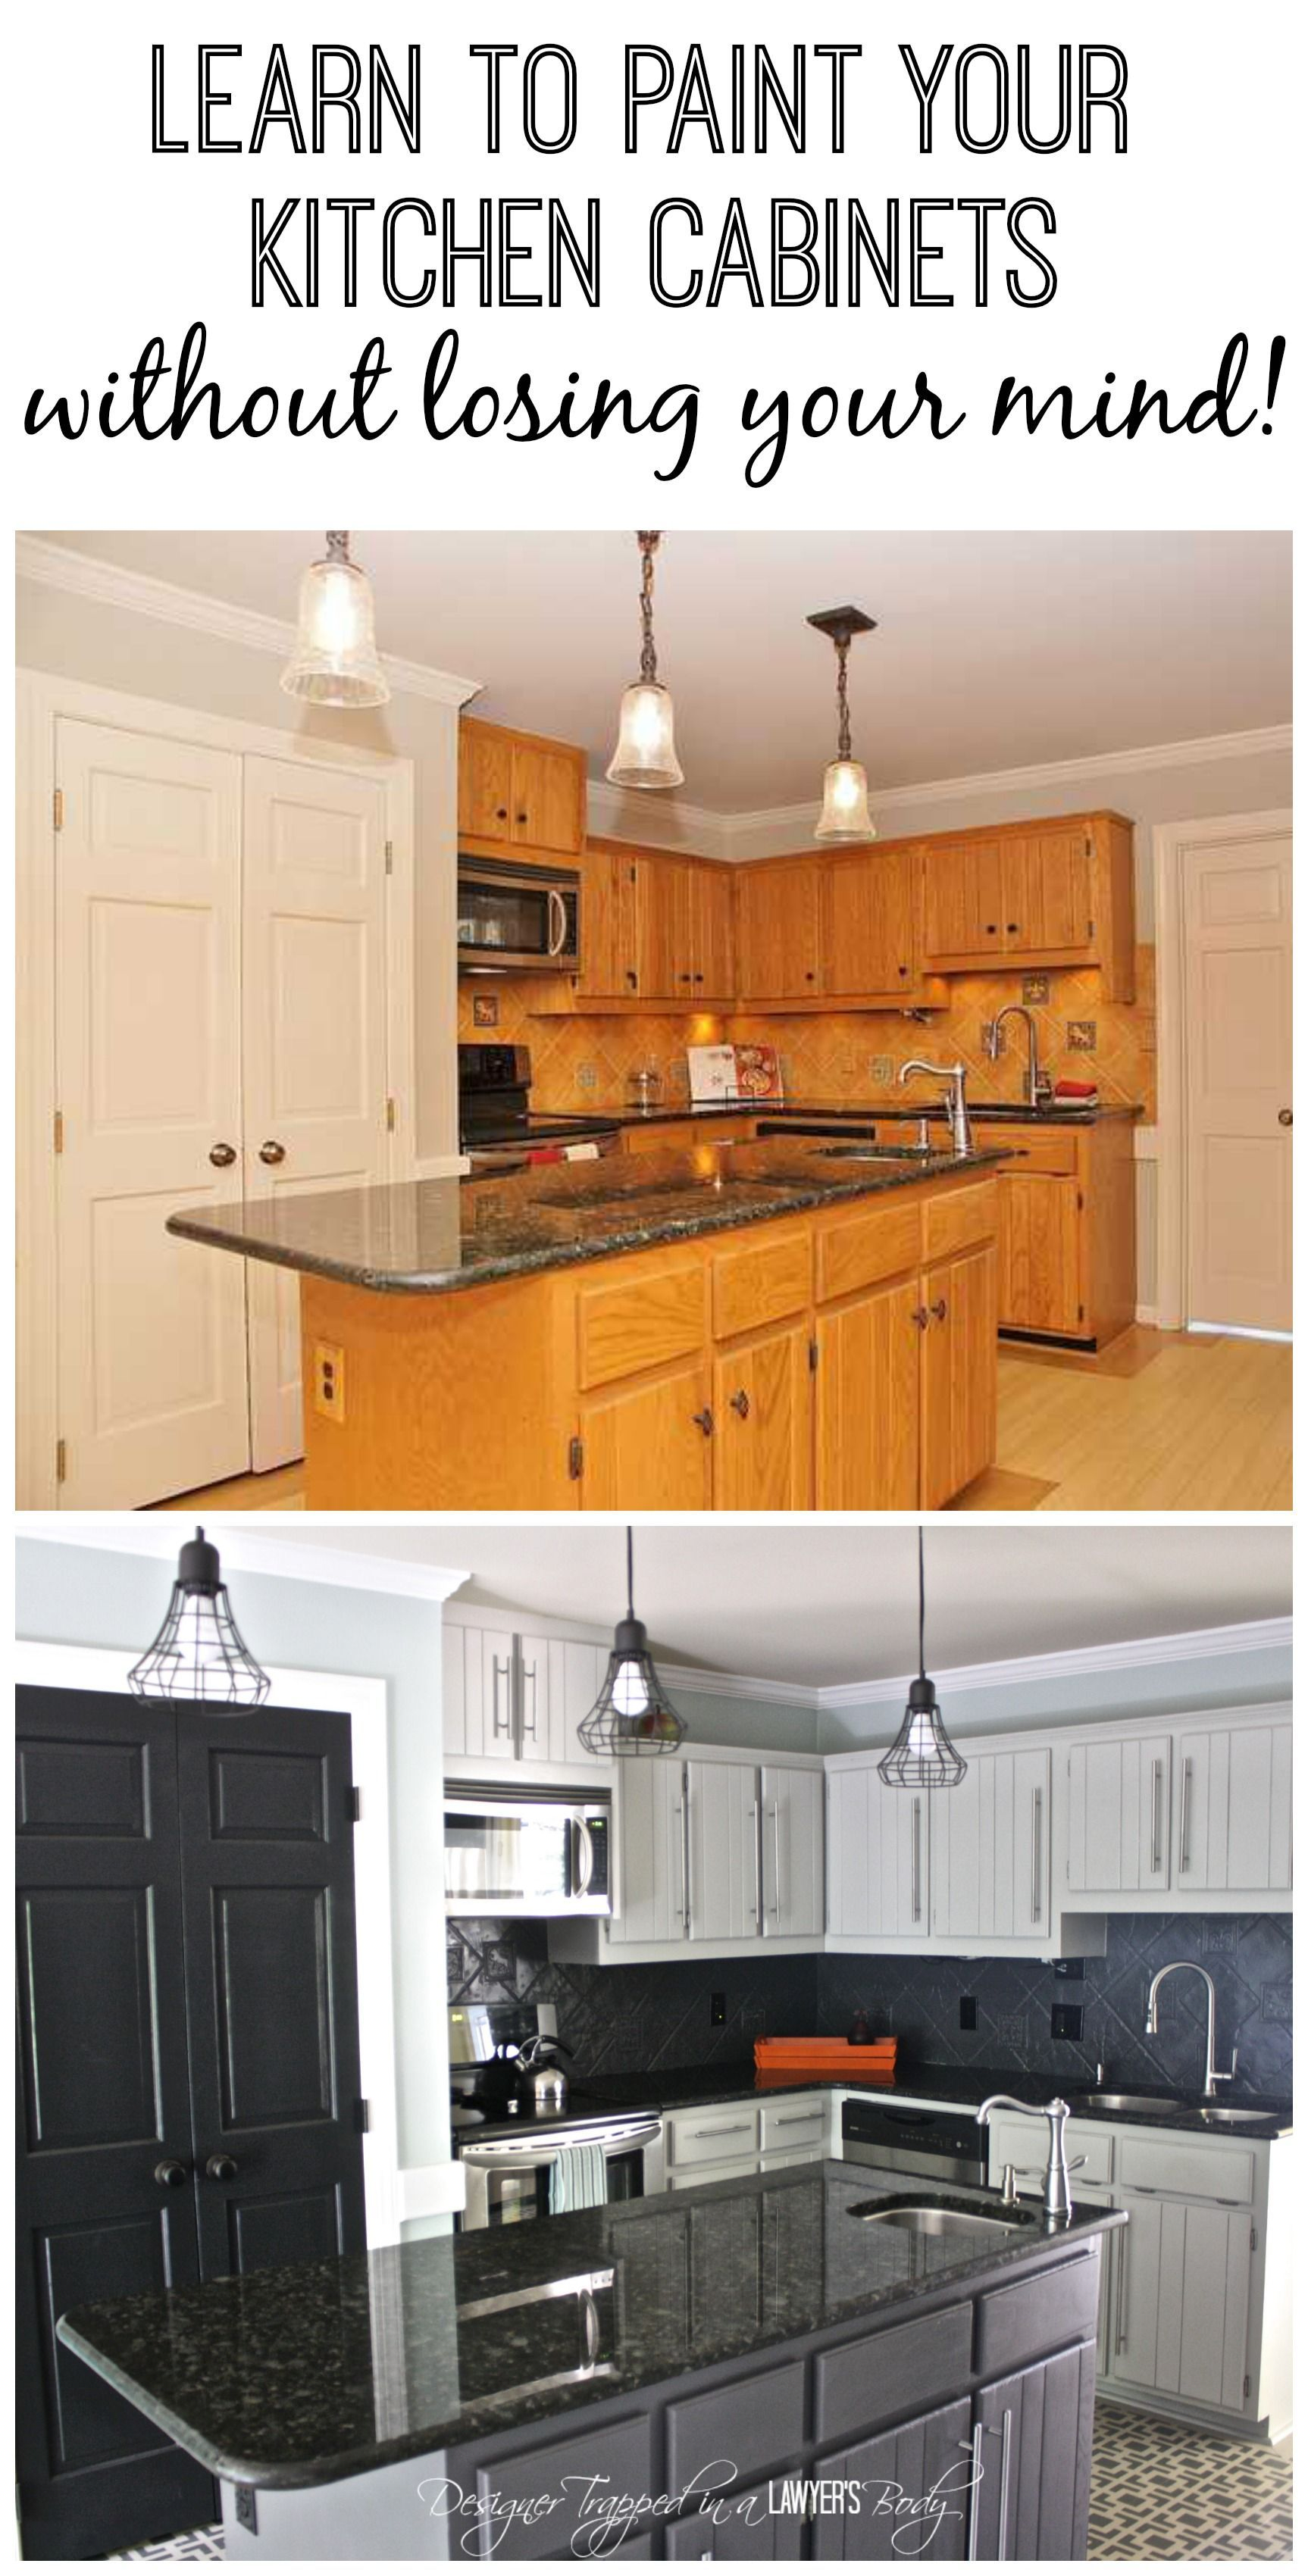 Learn To Paint Your Kitchen Cabinets Without Losing Your Mind